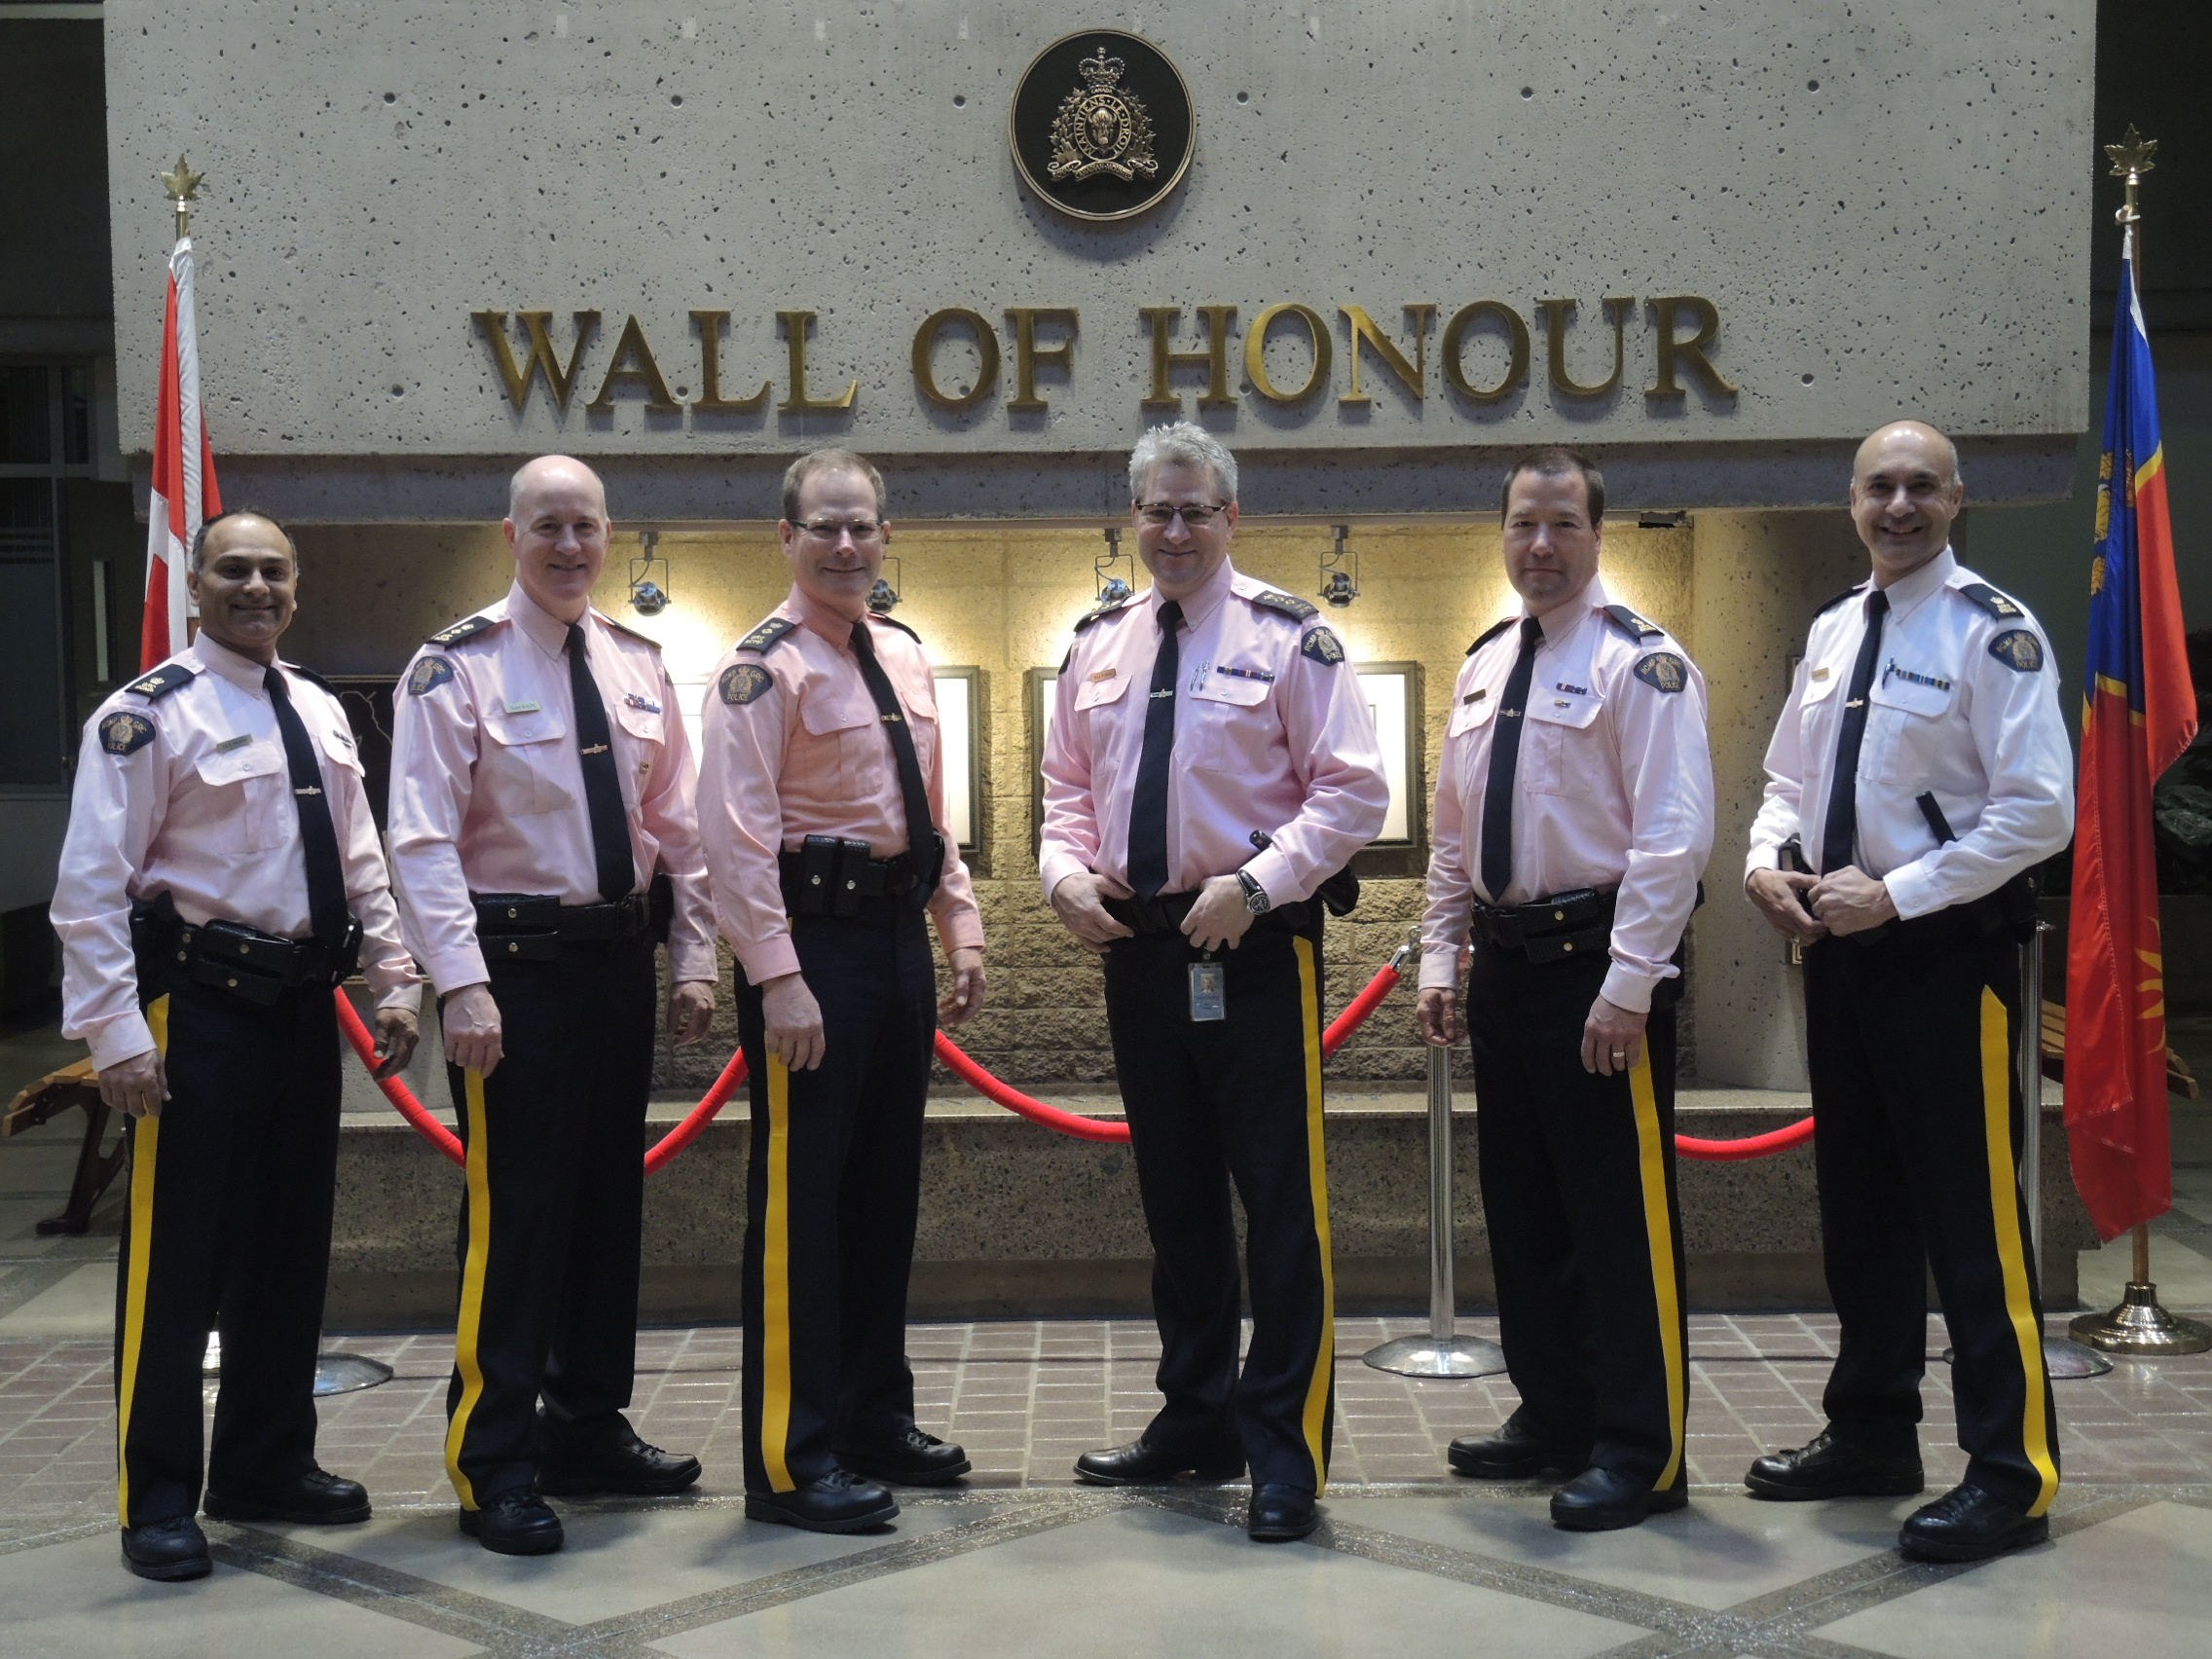 Surrey RCMP officers and staff wearing pink to show their support